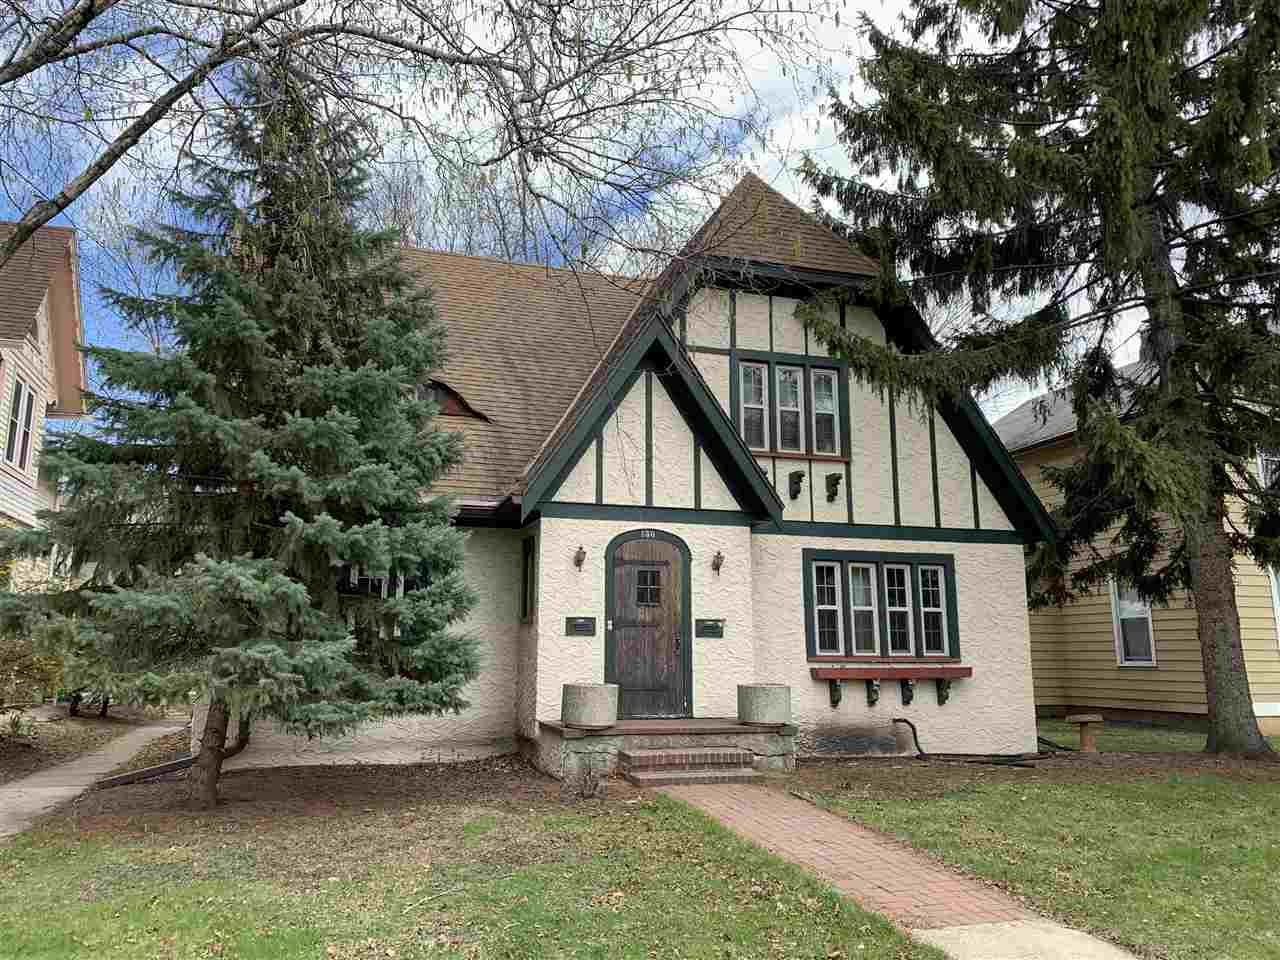 130 N MAPLE Avenue, Green Bay, WI 54303 - MLS#: 50238420